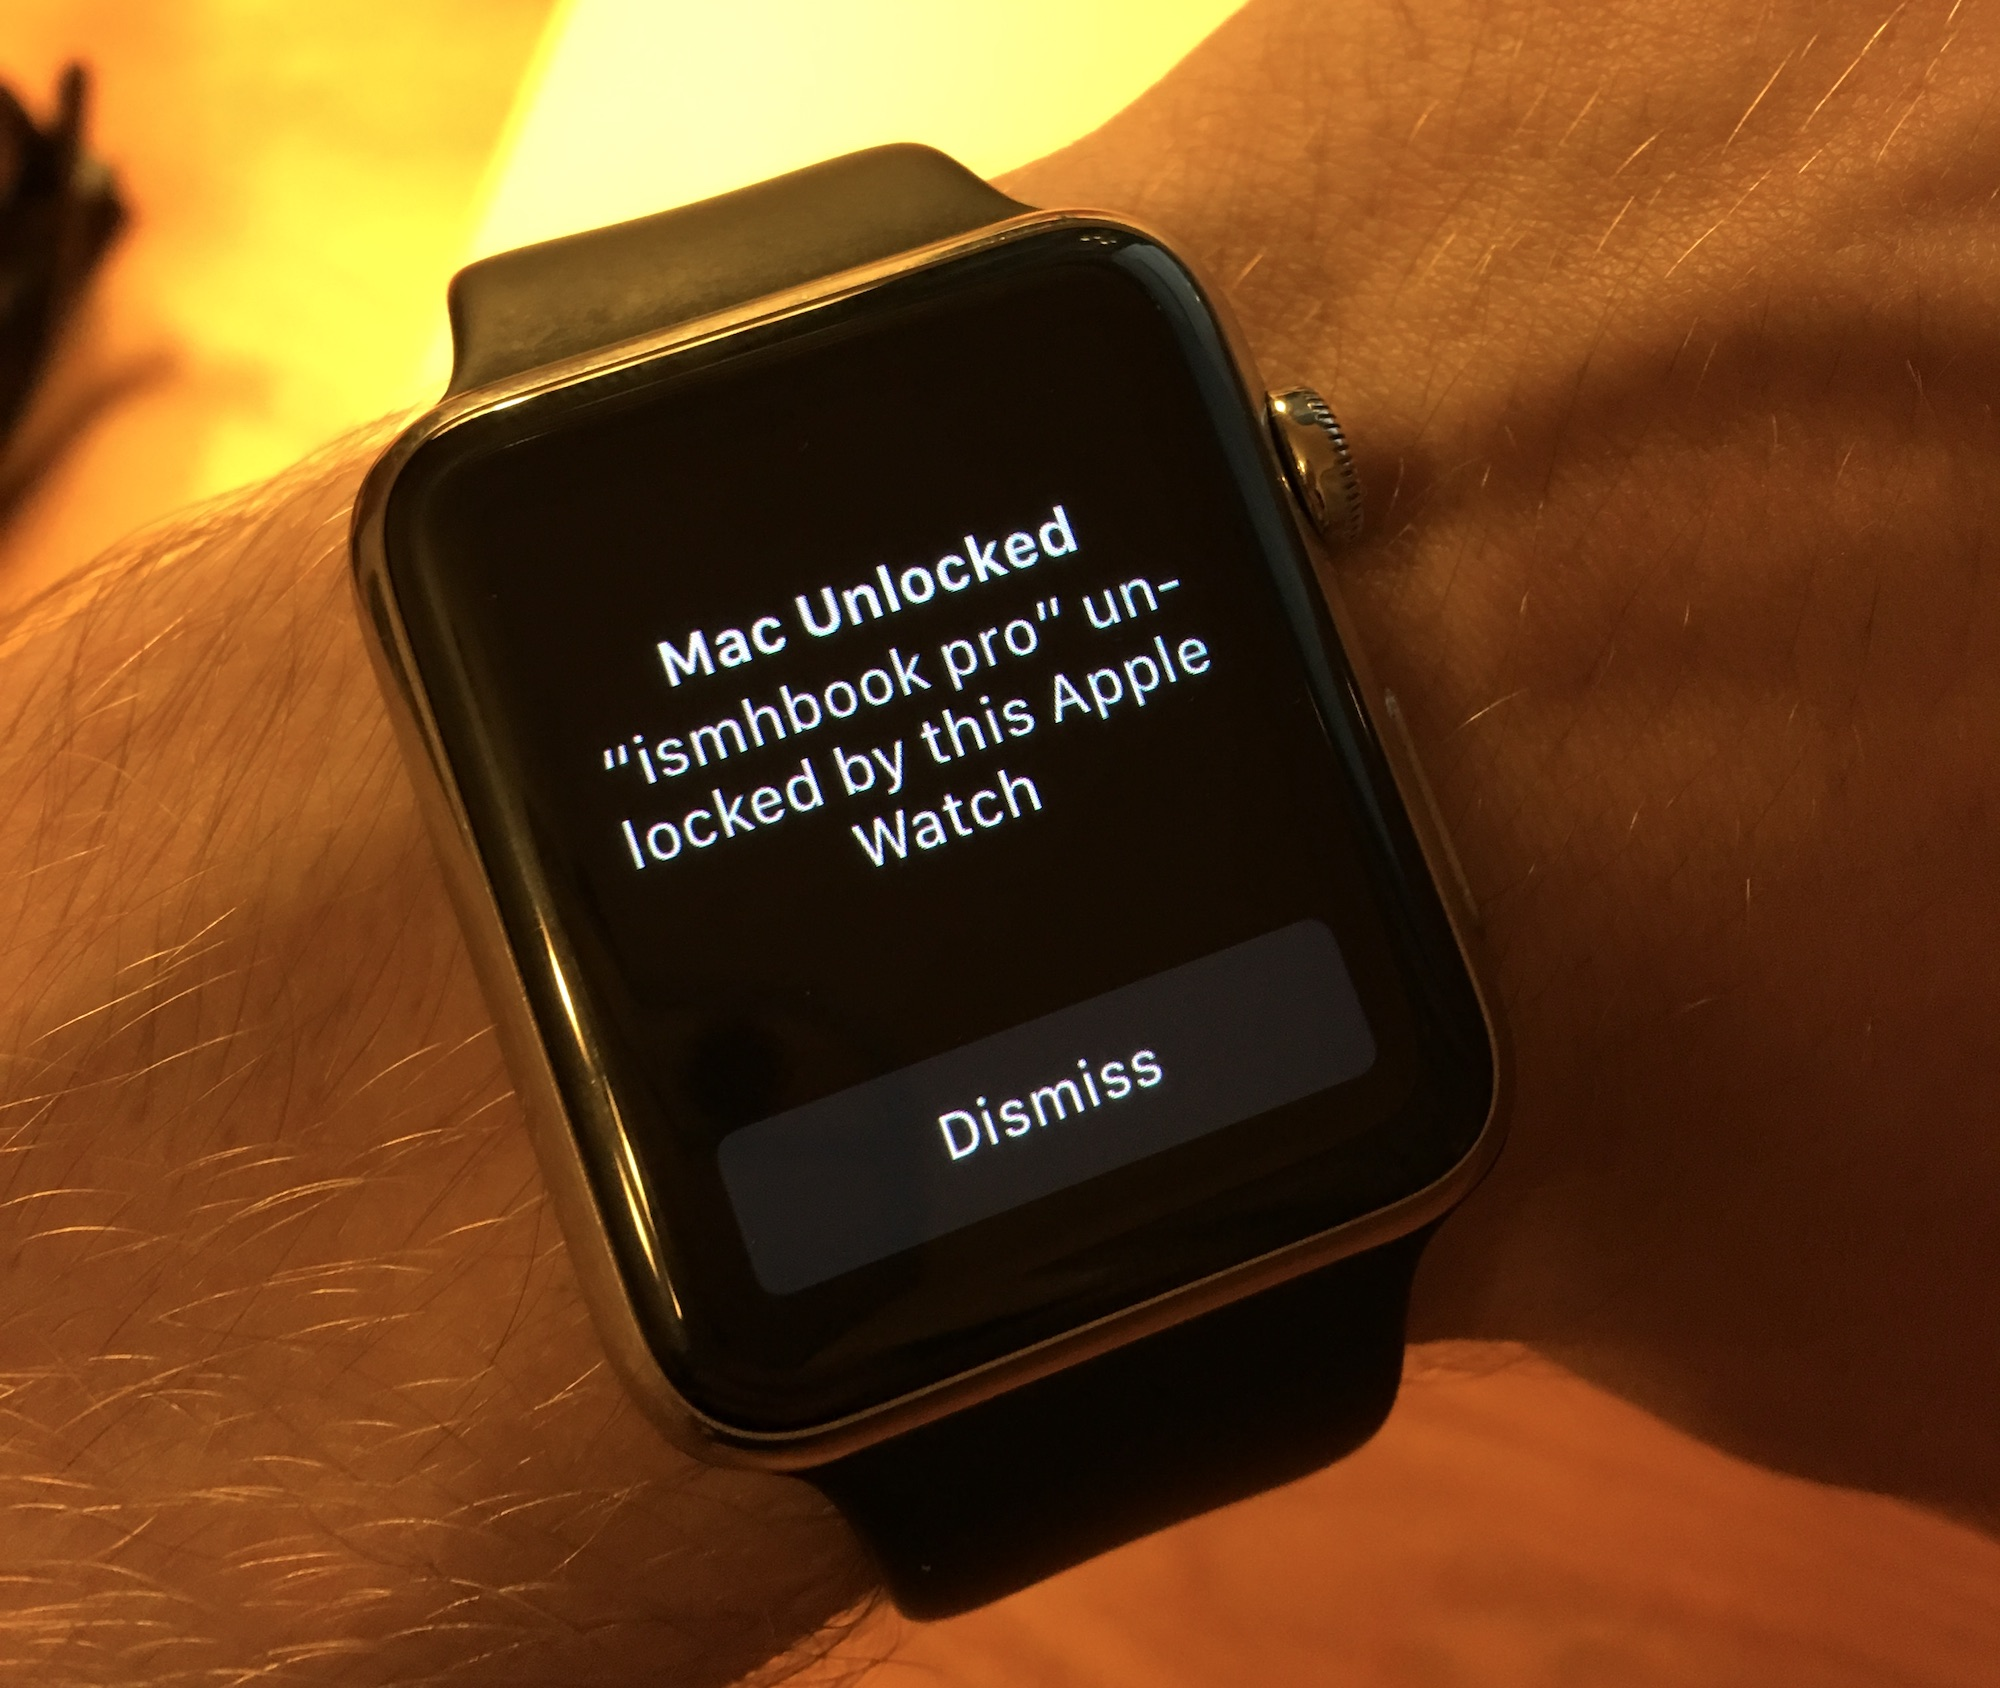 Apple Watch after unlock